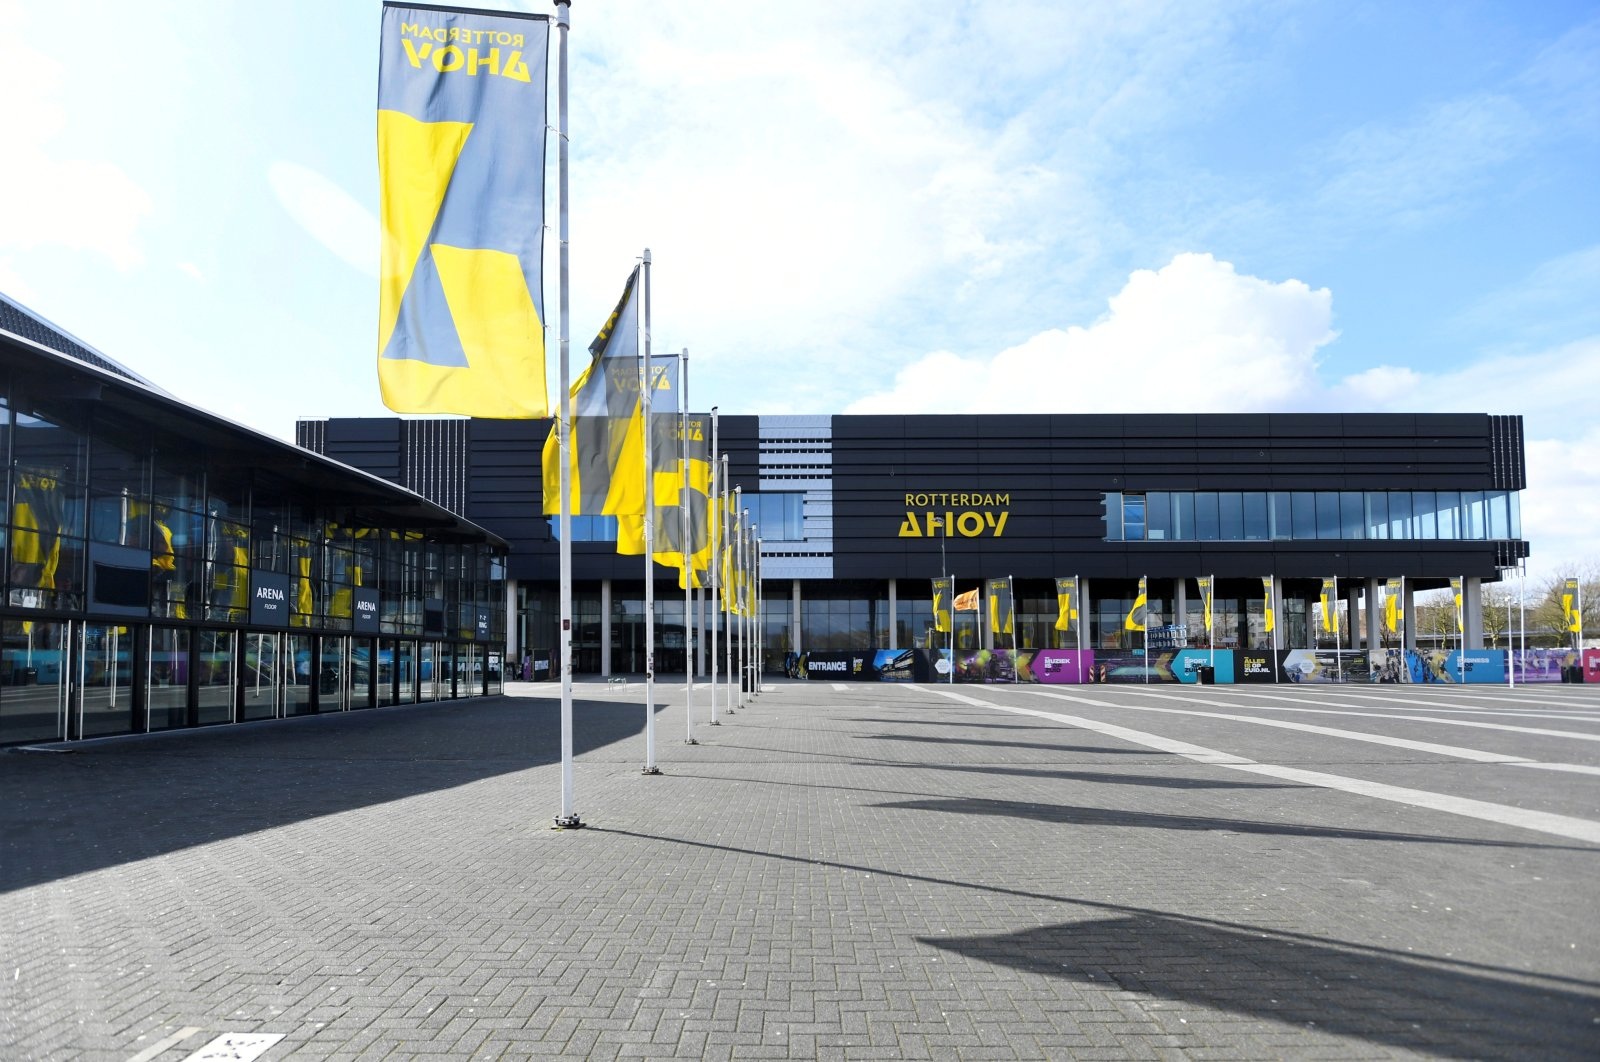 The Rotterdam Ahoy arena where the Eurovision Song Contest will be held in May, Rotterdam, the Netherlands, March 30, 2020. (Reuters Photo)